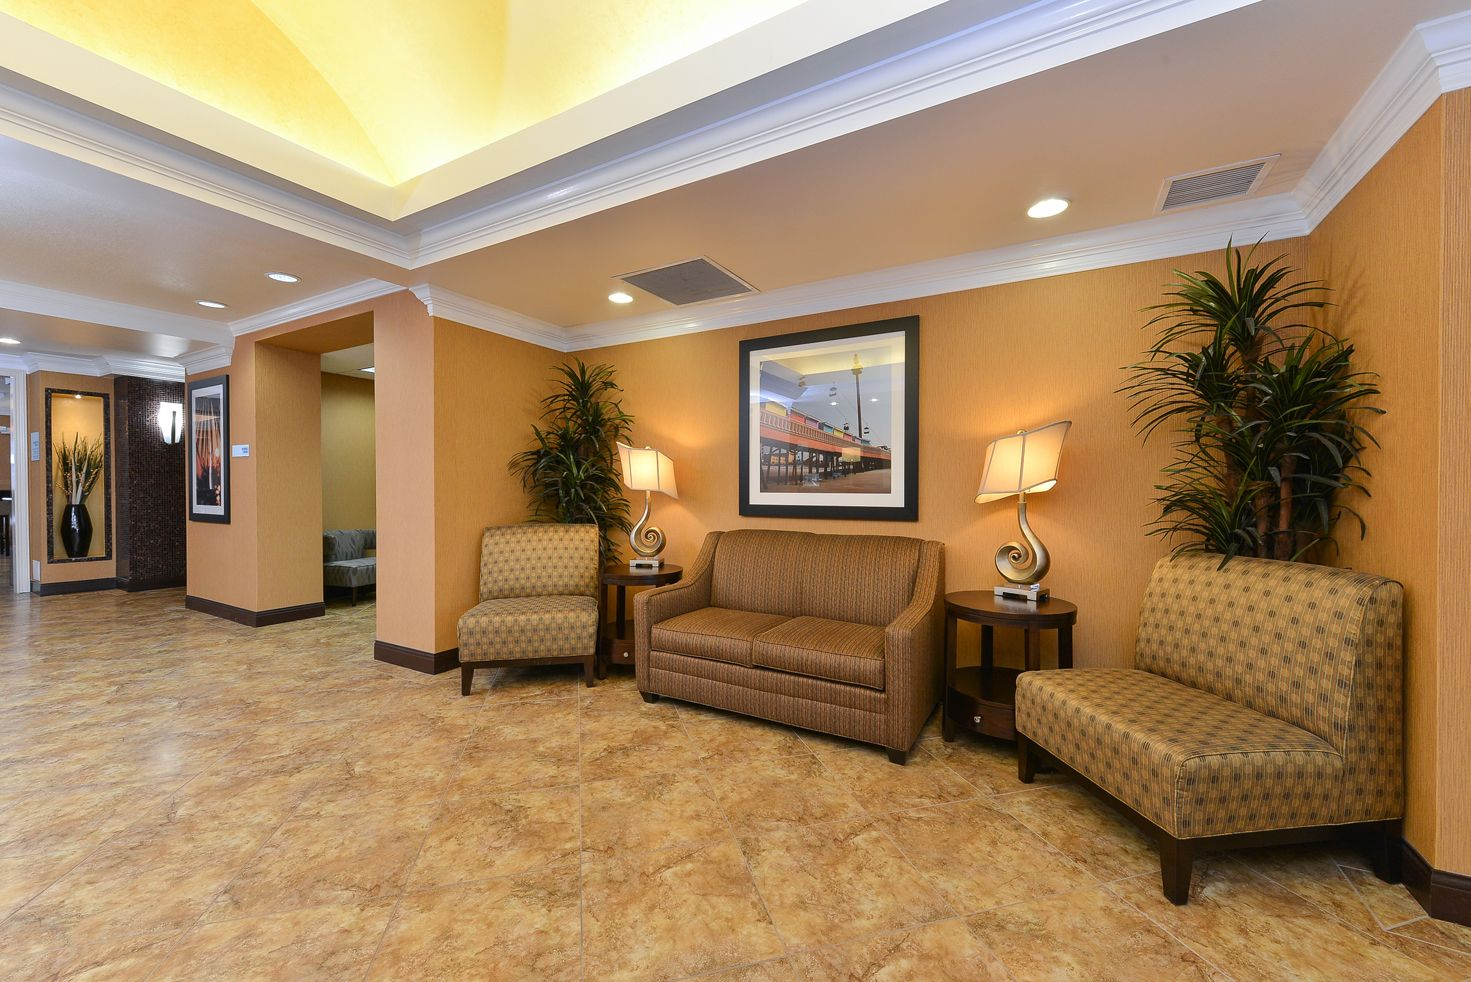 Holiday Inn Express & Suites Palm Coast - Flagler Bch Area image 4